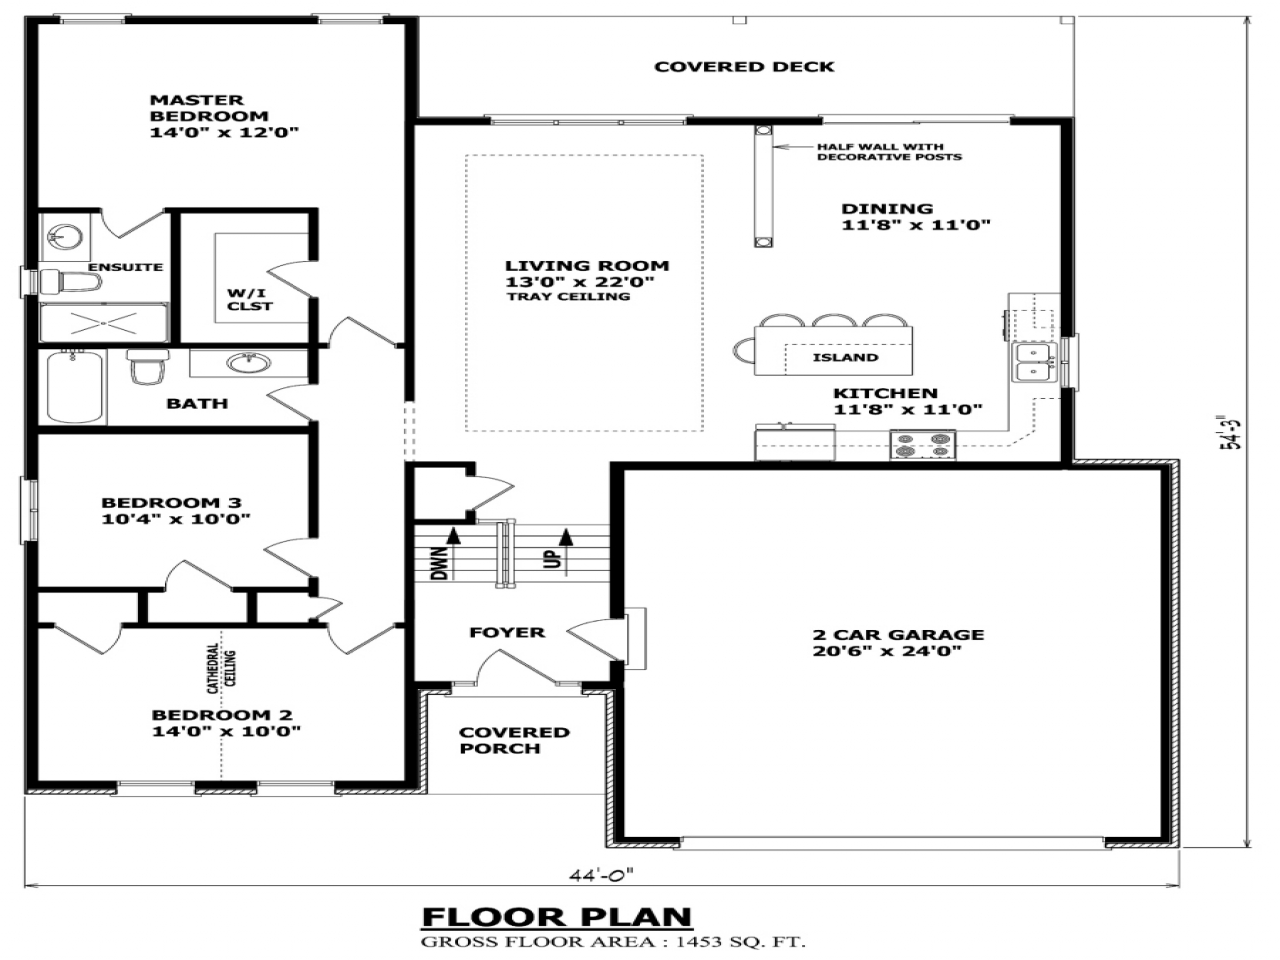 Raised house plans old bungalow style raised bungalow - Canadian home designs floor plans ...